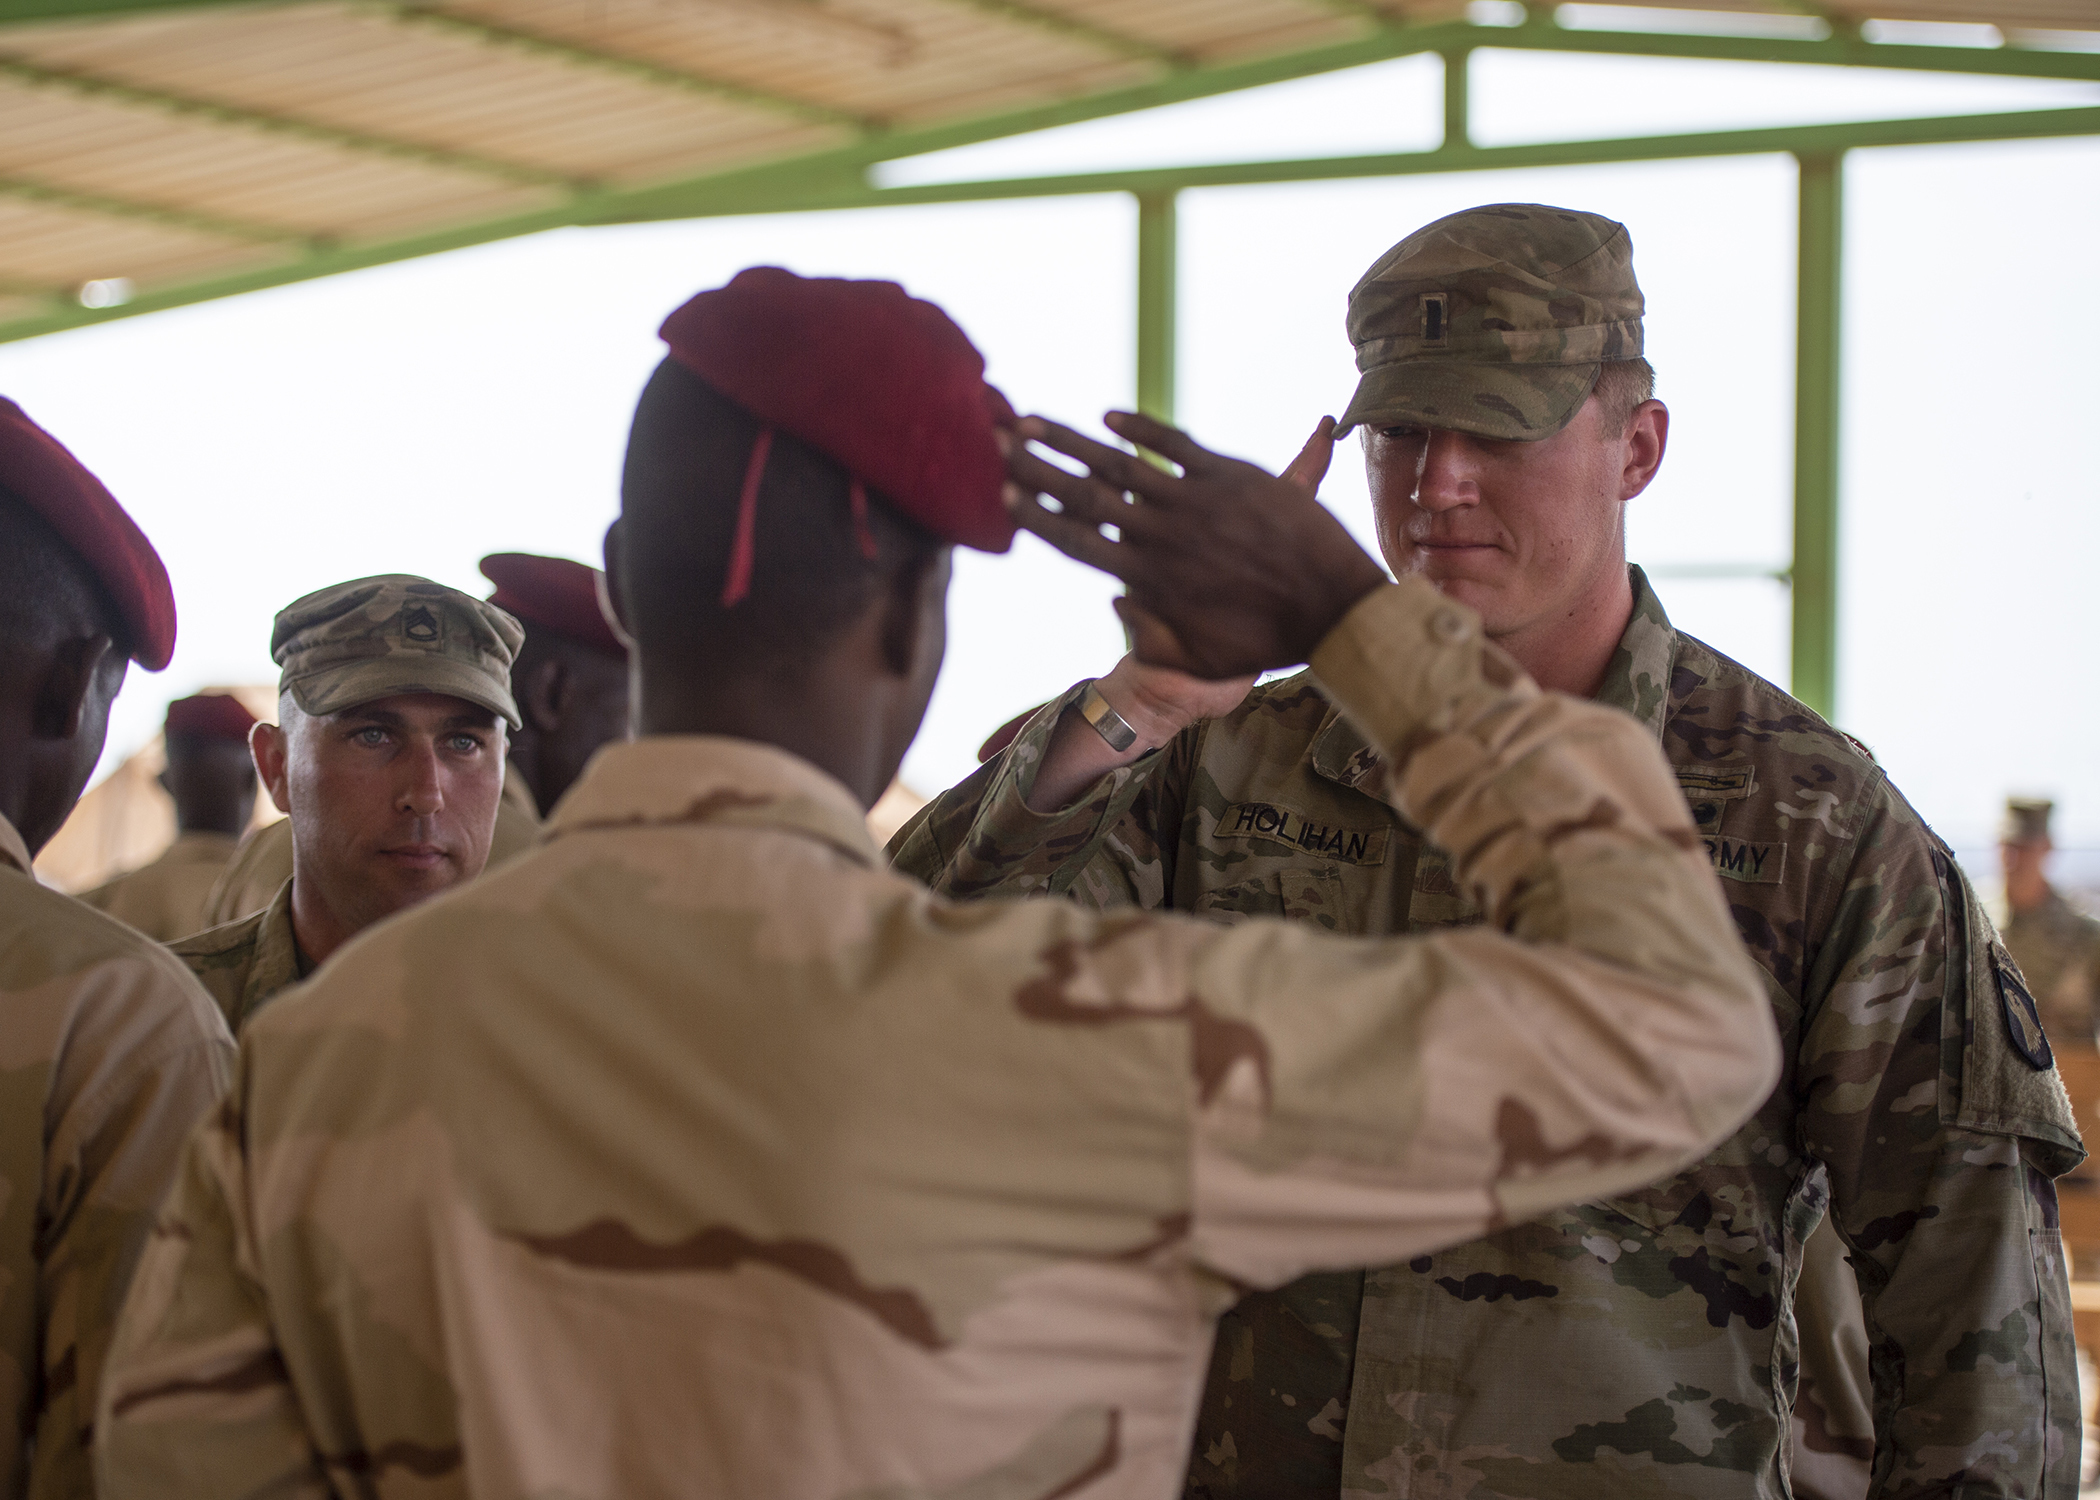 U.S. Army 1st Lt. Travis Holihan, the officer in charge of NCO training, Headquarters Company, 1-26 Infantry Battalion, 2nd Brigade Combat Team, 101st Airborne, assigned to Combined Joint Task Force-Horn of Africa, returns a salute during an NCO course graduation for the Rapid Intervention Battalion (RIB), a Djiboutian army elite military force, at a training location near Djibouti, March 7, 2019. U.S. Soldiers with Holihan's unit taught the course to the RIB soldiers. (U.S. Air Force photo by Tech. Sgt. Shawn Nickel)